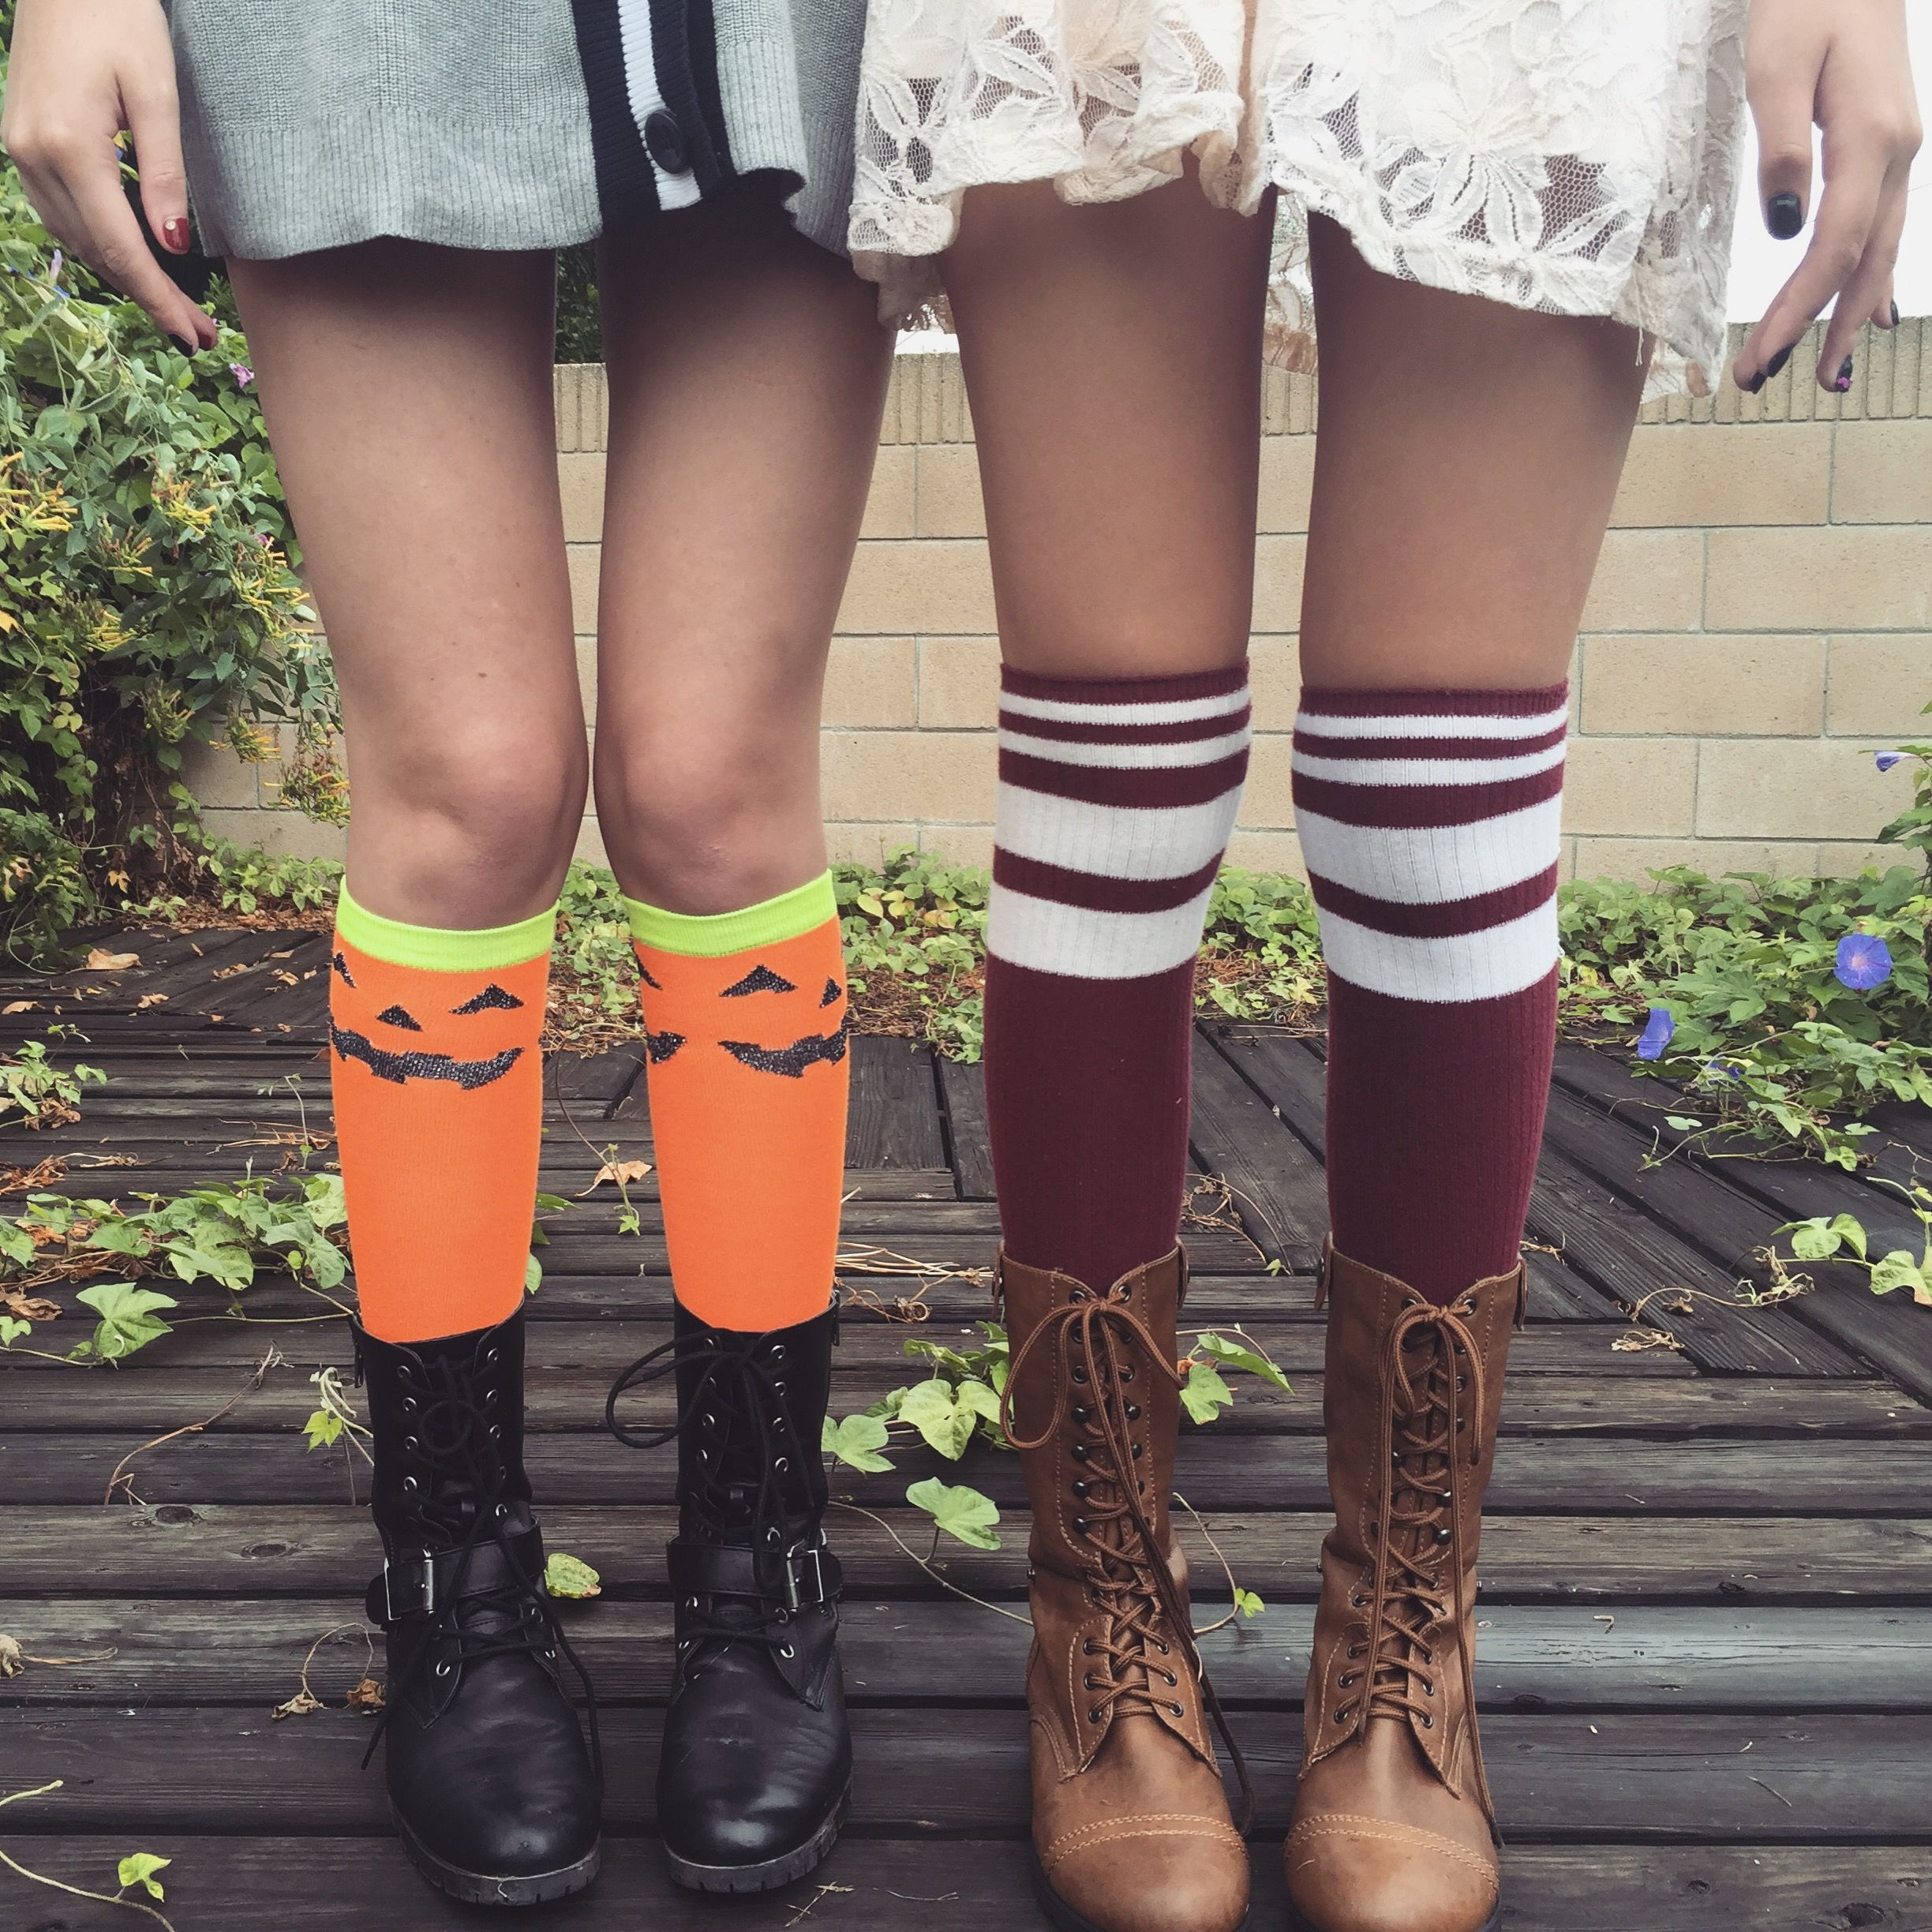 My sister and I are ready for fall @CupcakeKatie98